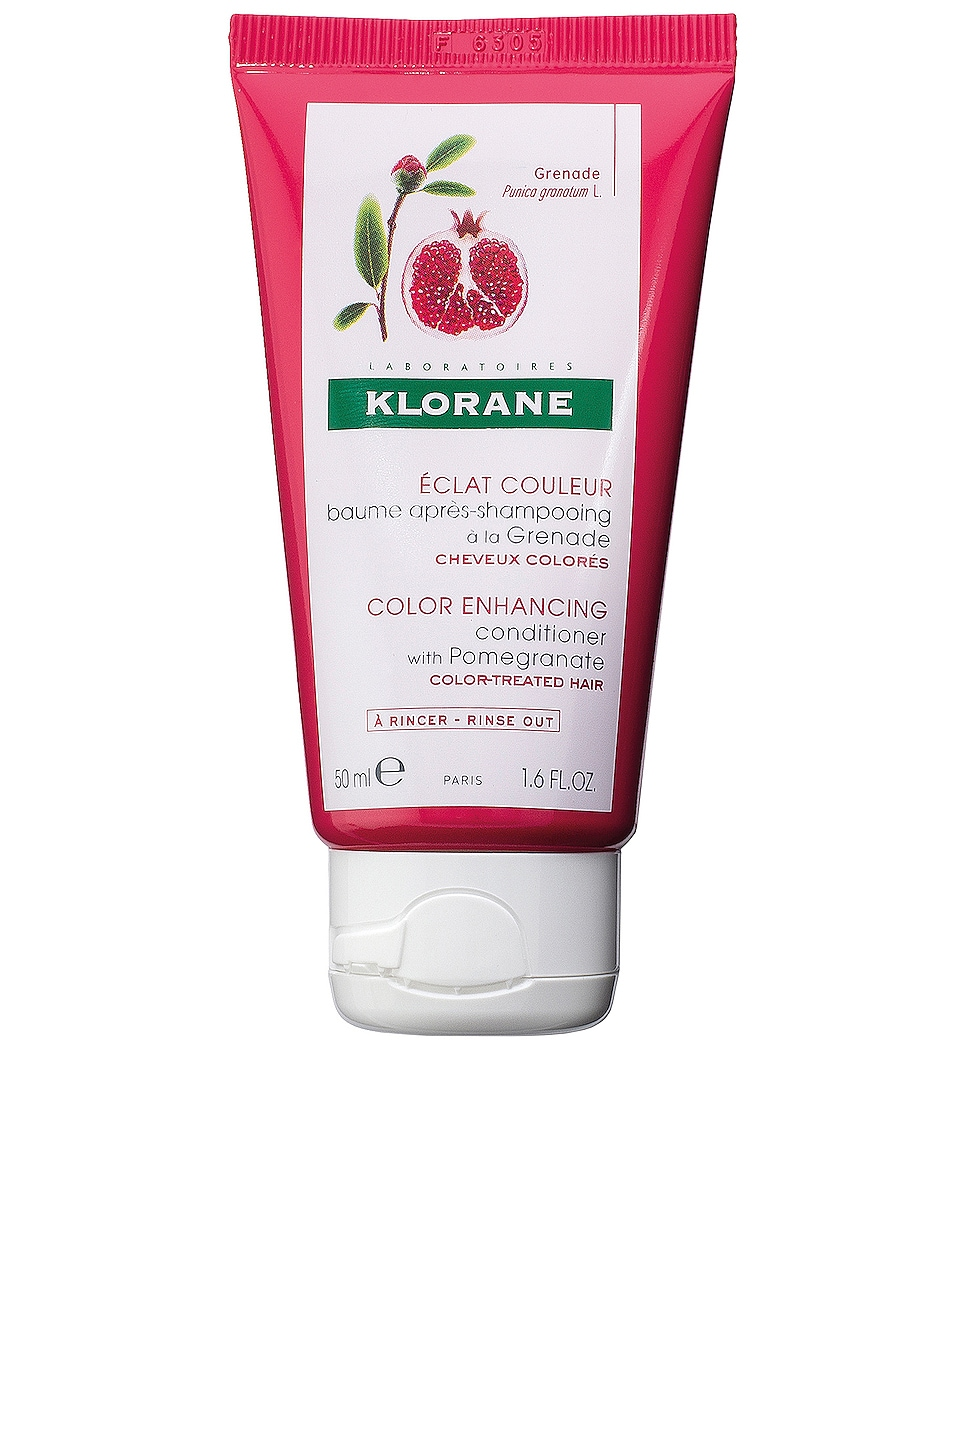 Klorane Travel Conditioner with Pomegranate